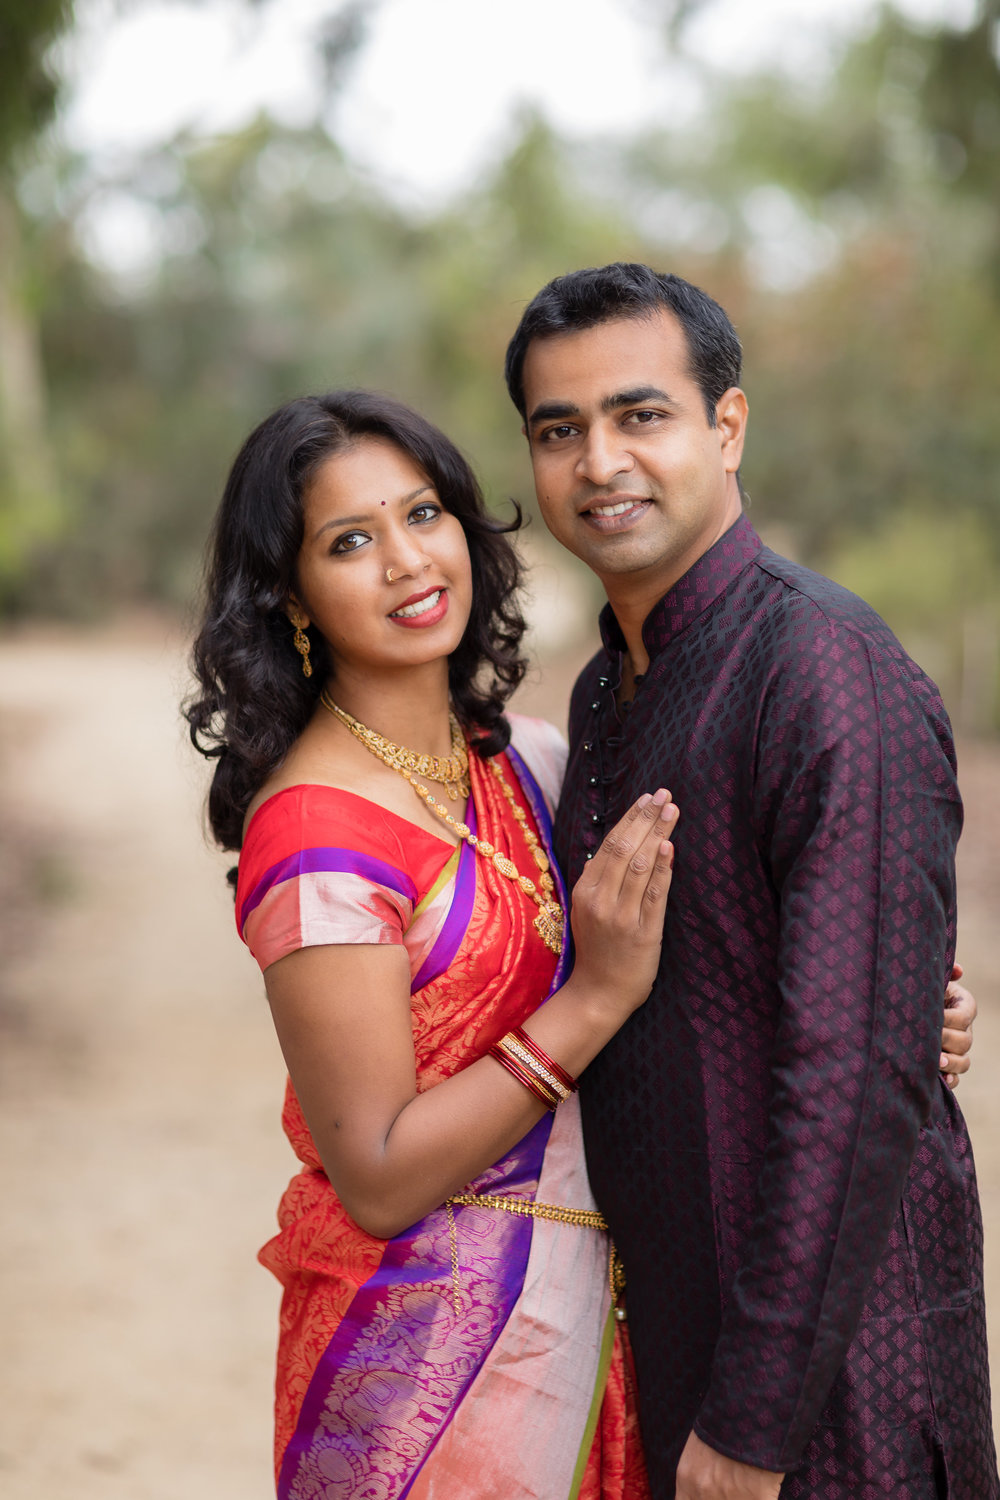 Colorful East Indian Engagement Photo Session.jpg